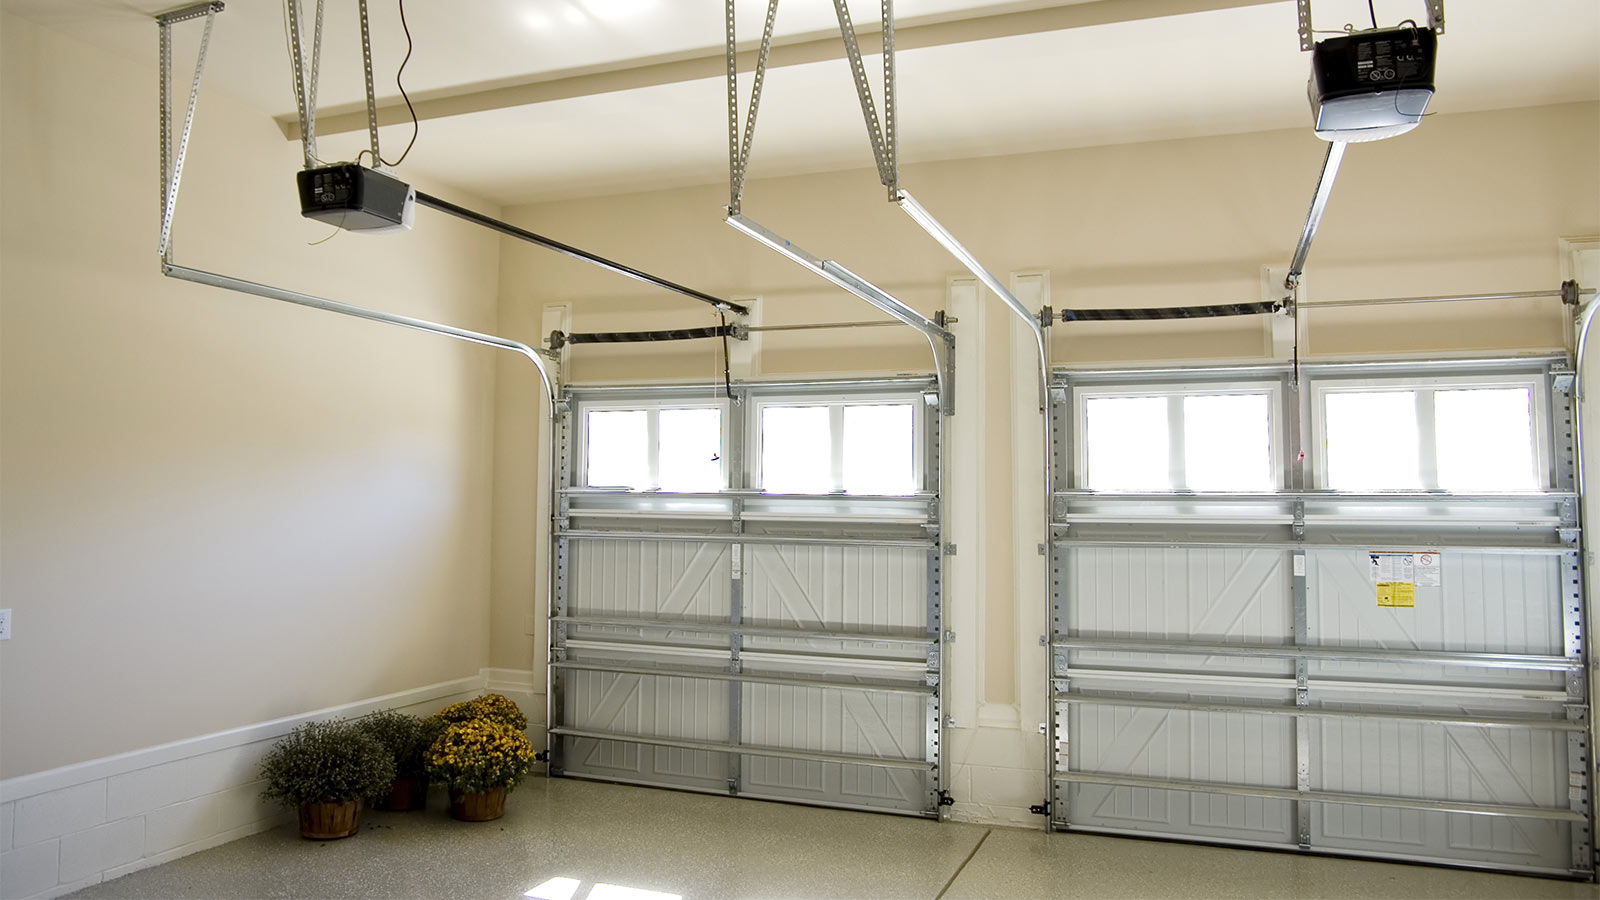 Sectional Garage Doors from High Speed Roller Shutters Romford suppliers.